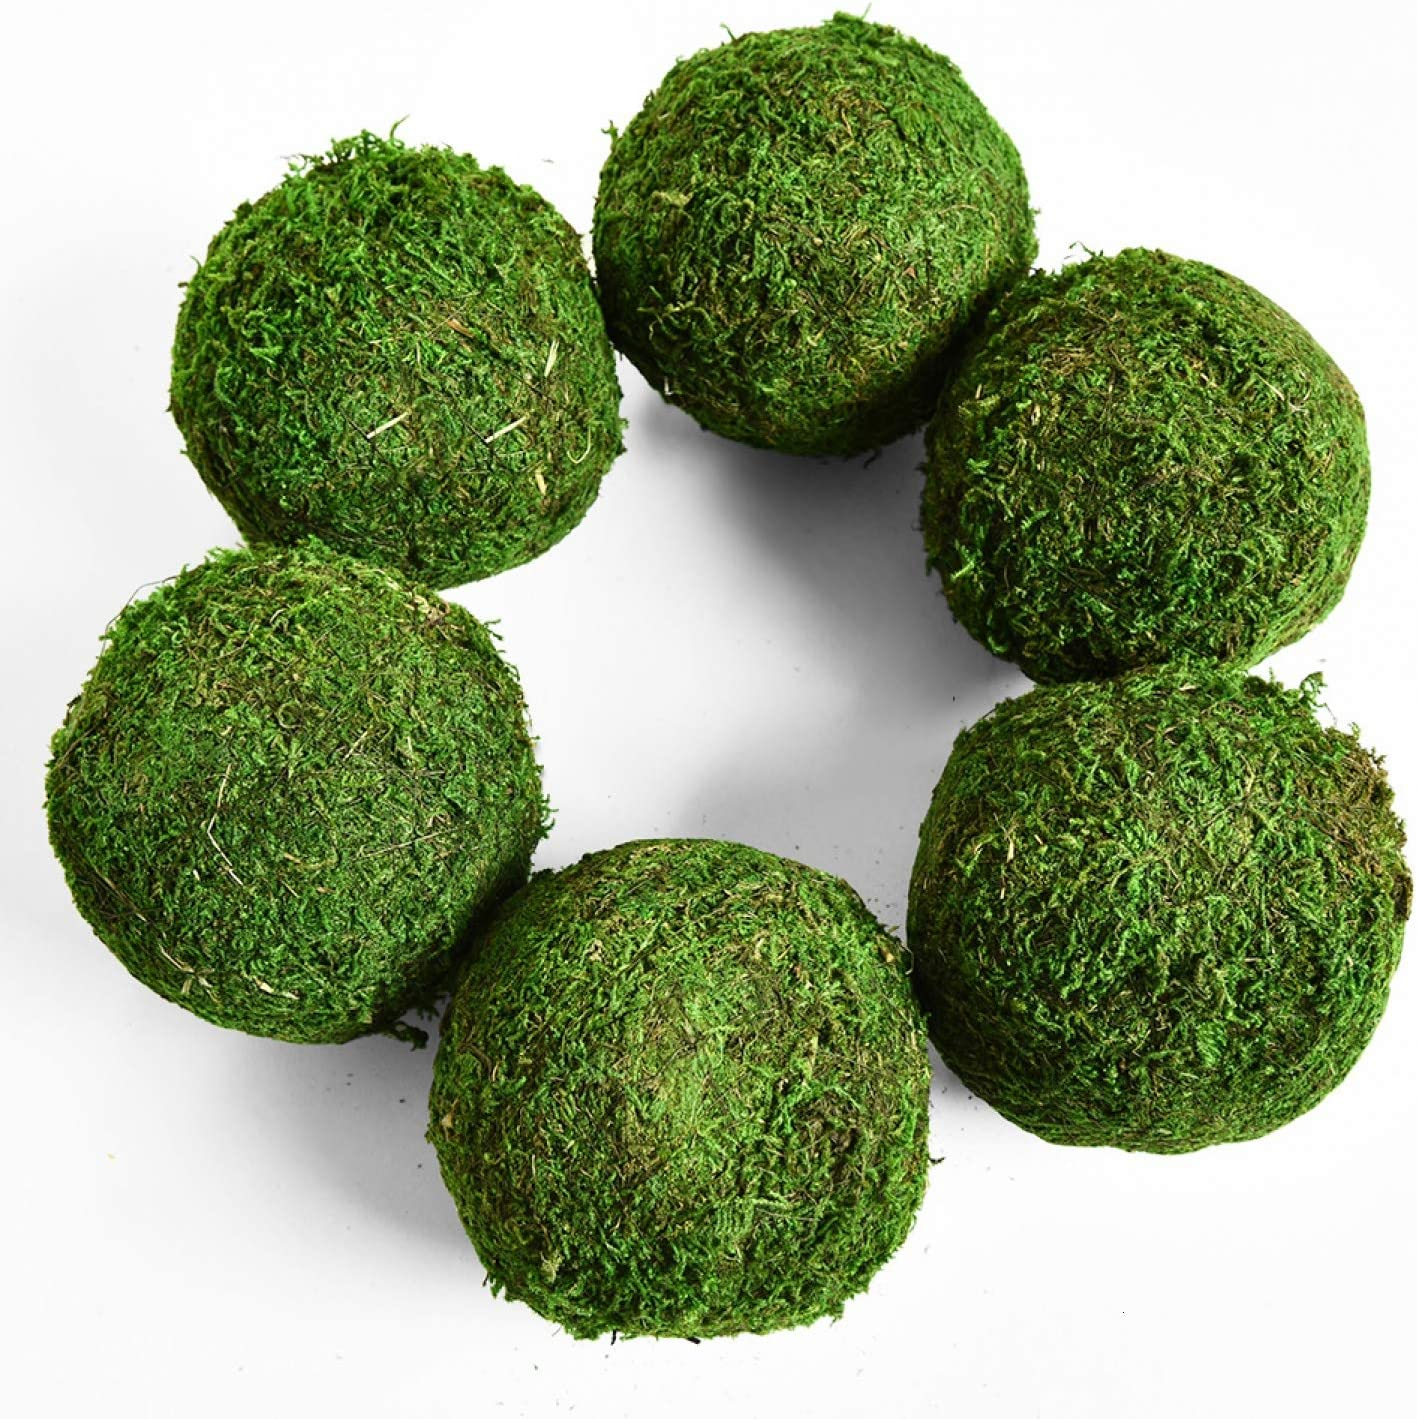 "Vumdua Moss Ball, Natural Decorative Green Globes with Handmade, Hanging Balls Vase Bowl Filler for Home Party &Weddings Display Decor Props (3.5""-Set of 6)"